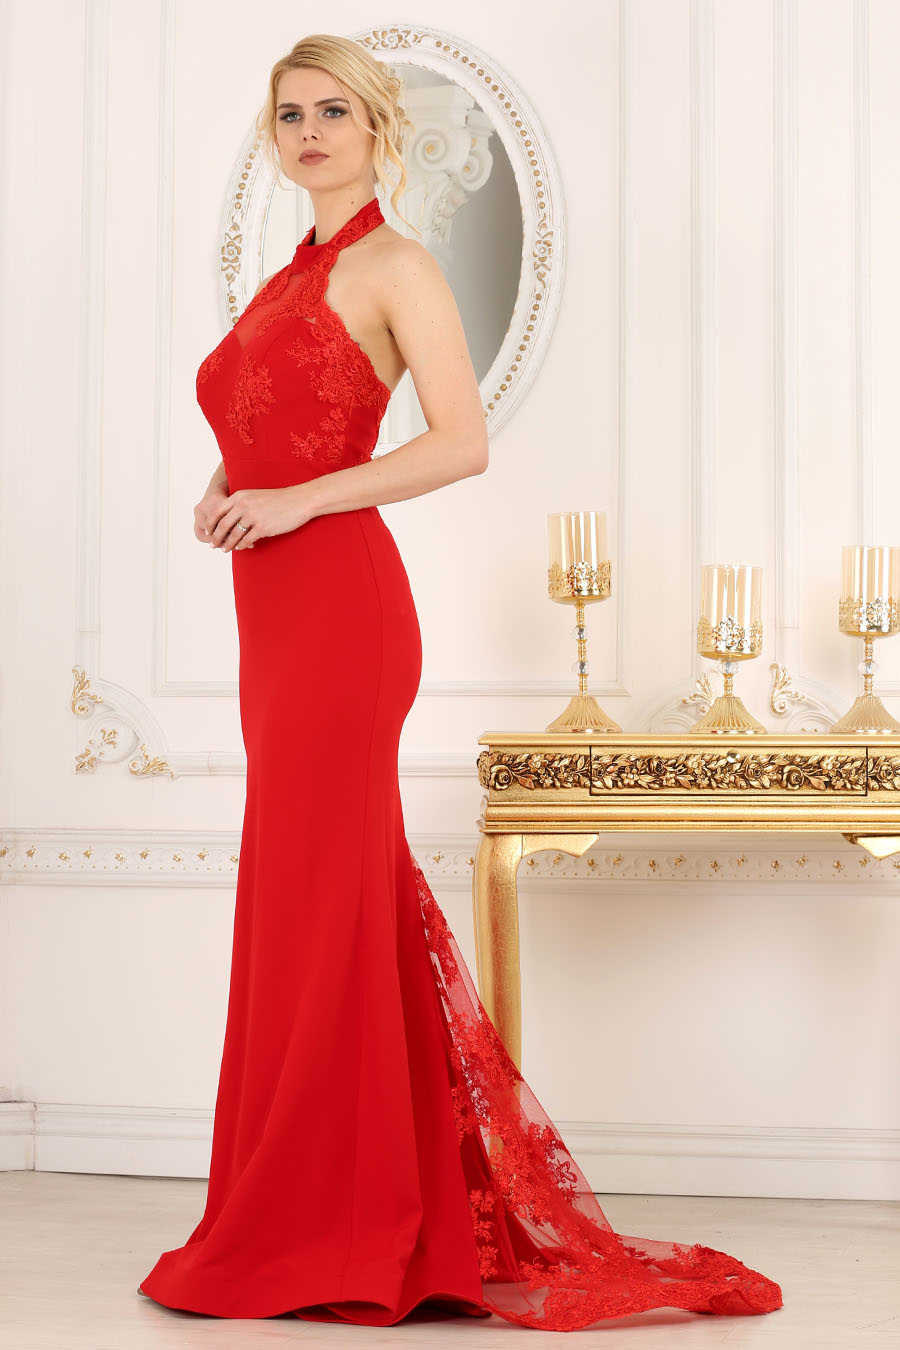 Neva Style - Red Prom Dress 7385K